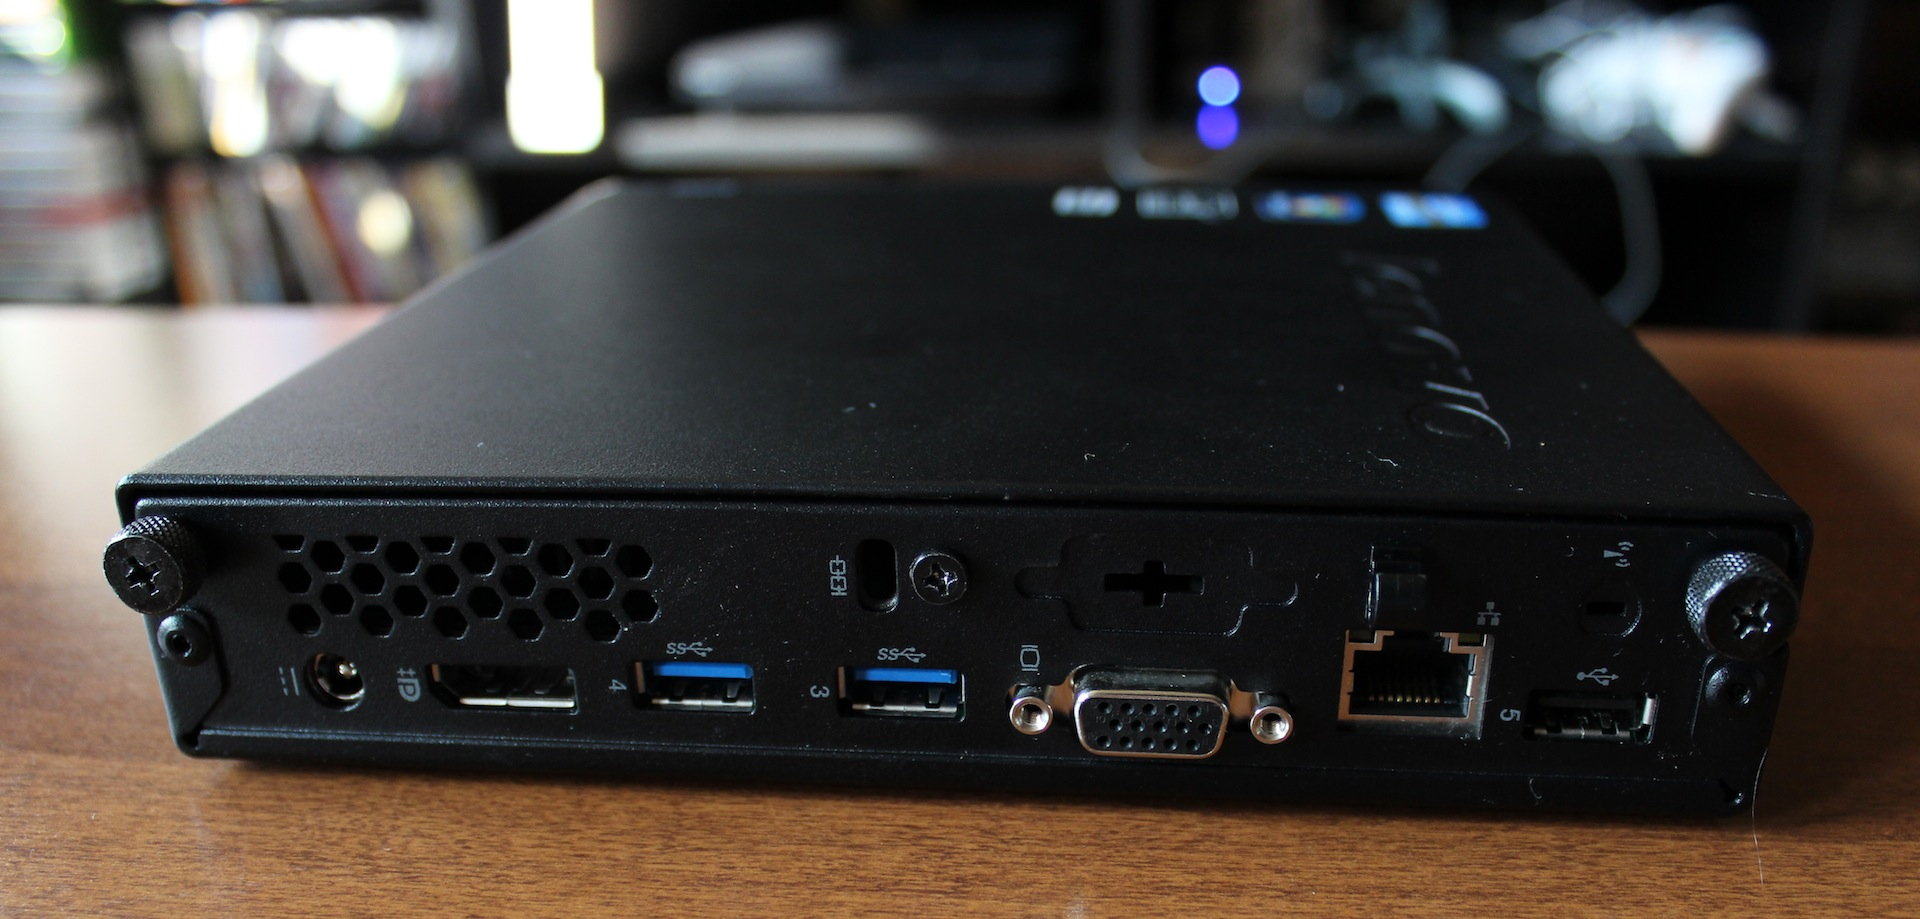 The M92p's back features VGA and DisplayPort outputs, a gigabit Ethernet port, two USB 3.0 ports, one USB 2.0 port, a jack for the computer's external power adapter, a Kensington lock slot, and a spot where the wireless antenna would be if our unit included one.